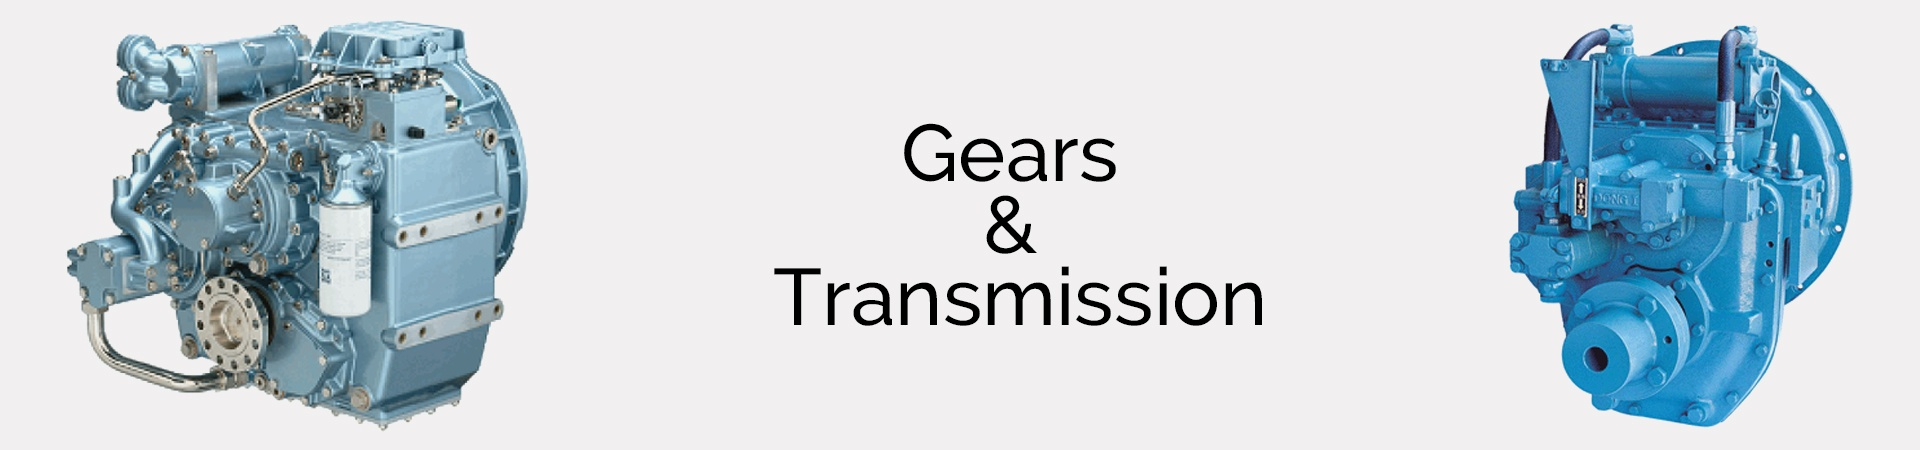 Gears and Transmission